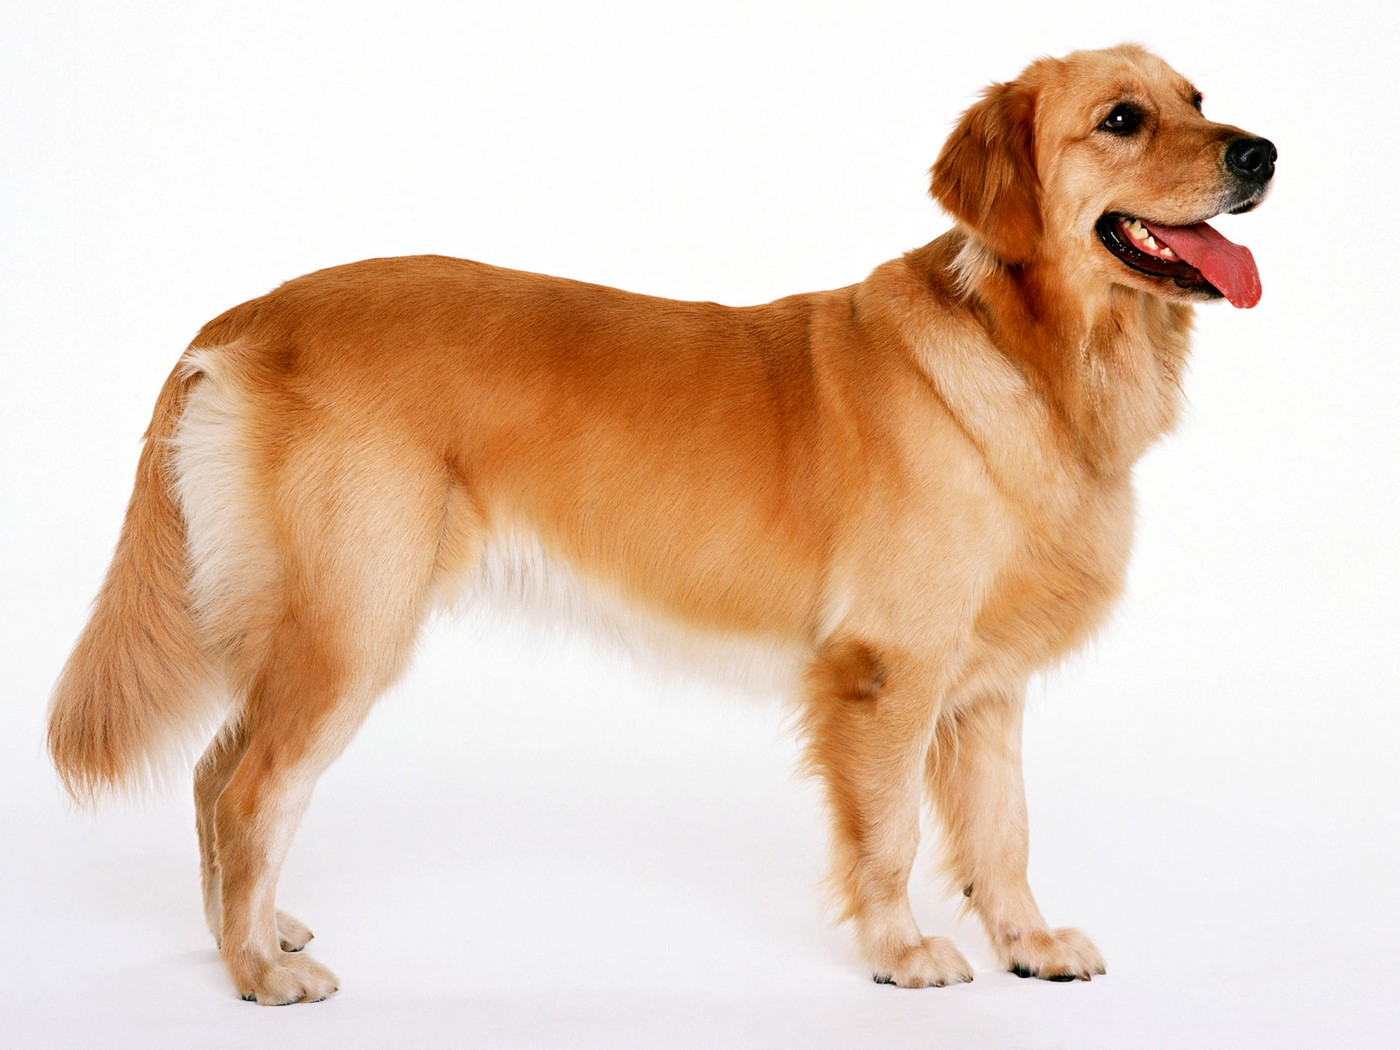 dog hd png transparent dog hd images. | pluspng